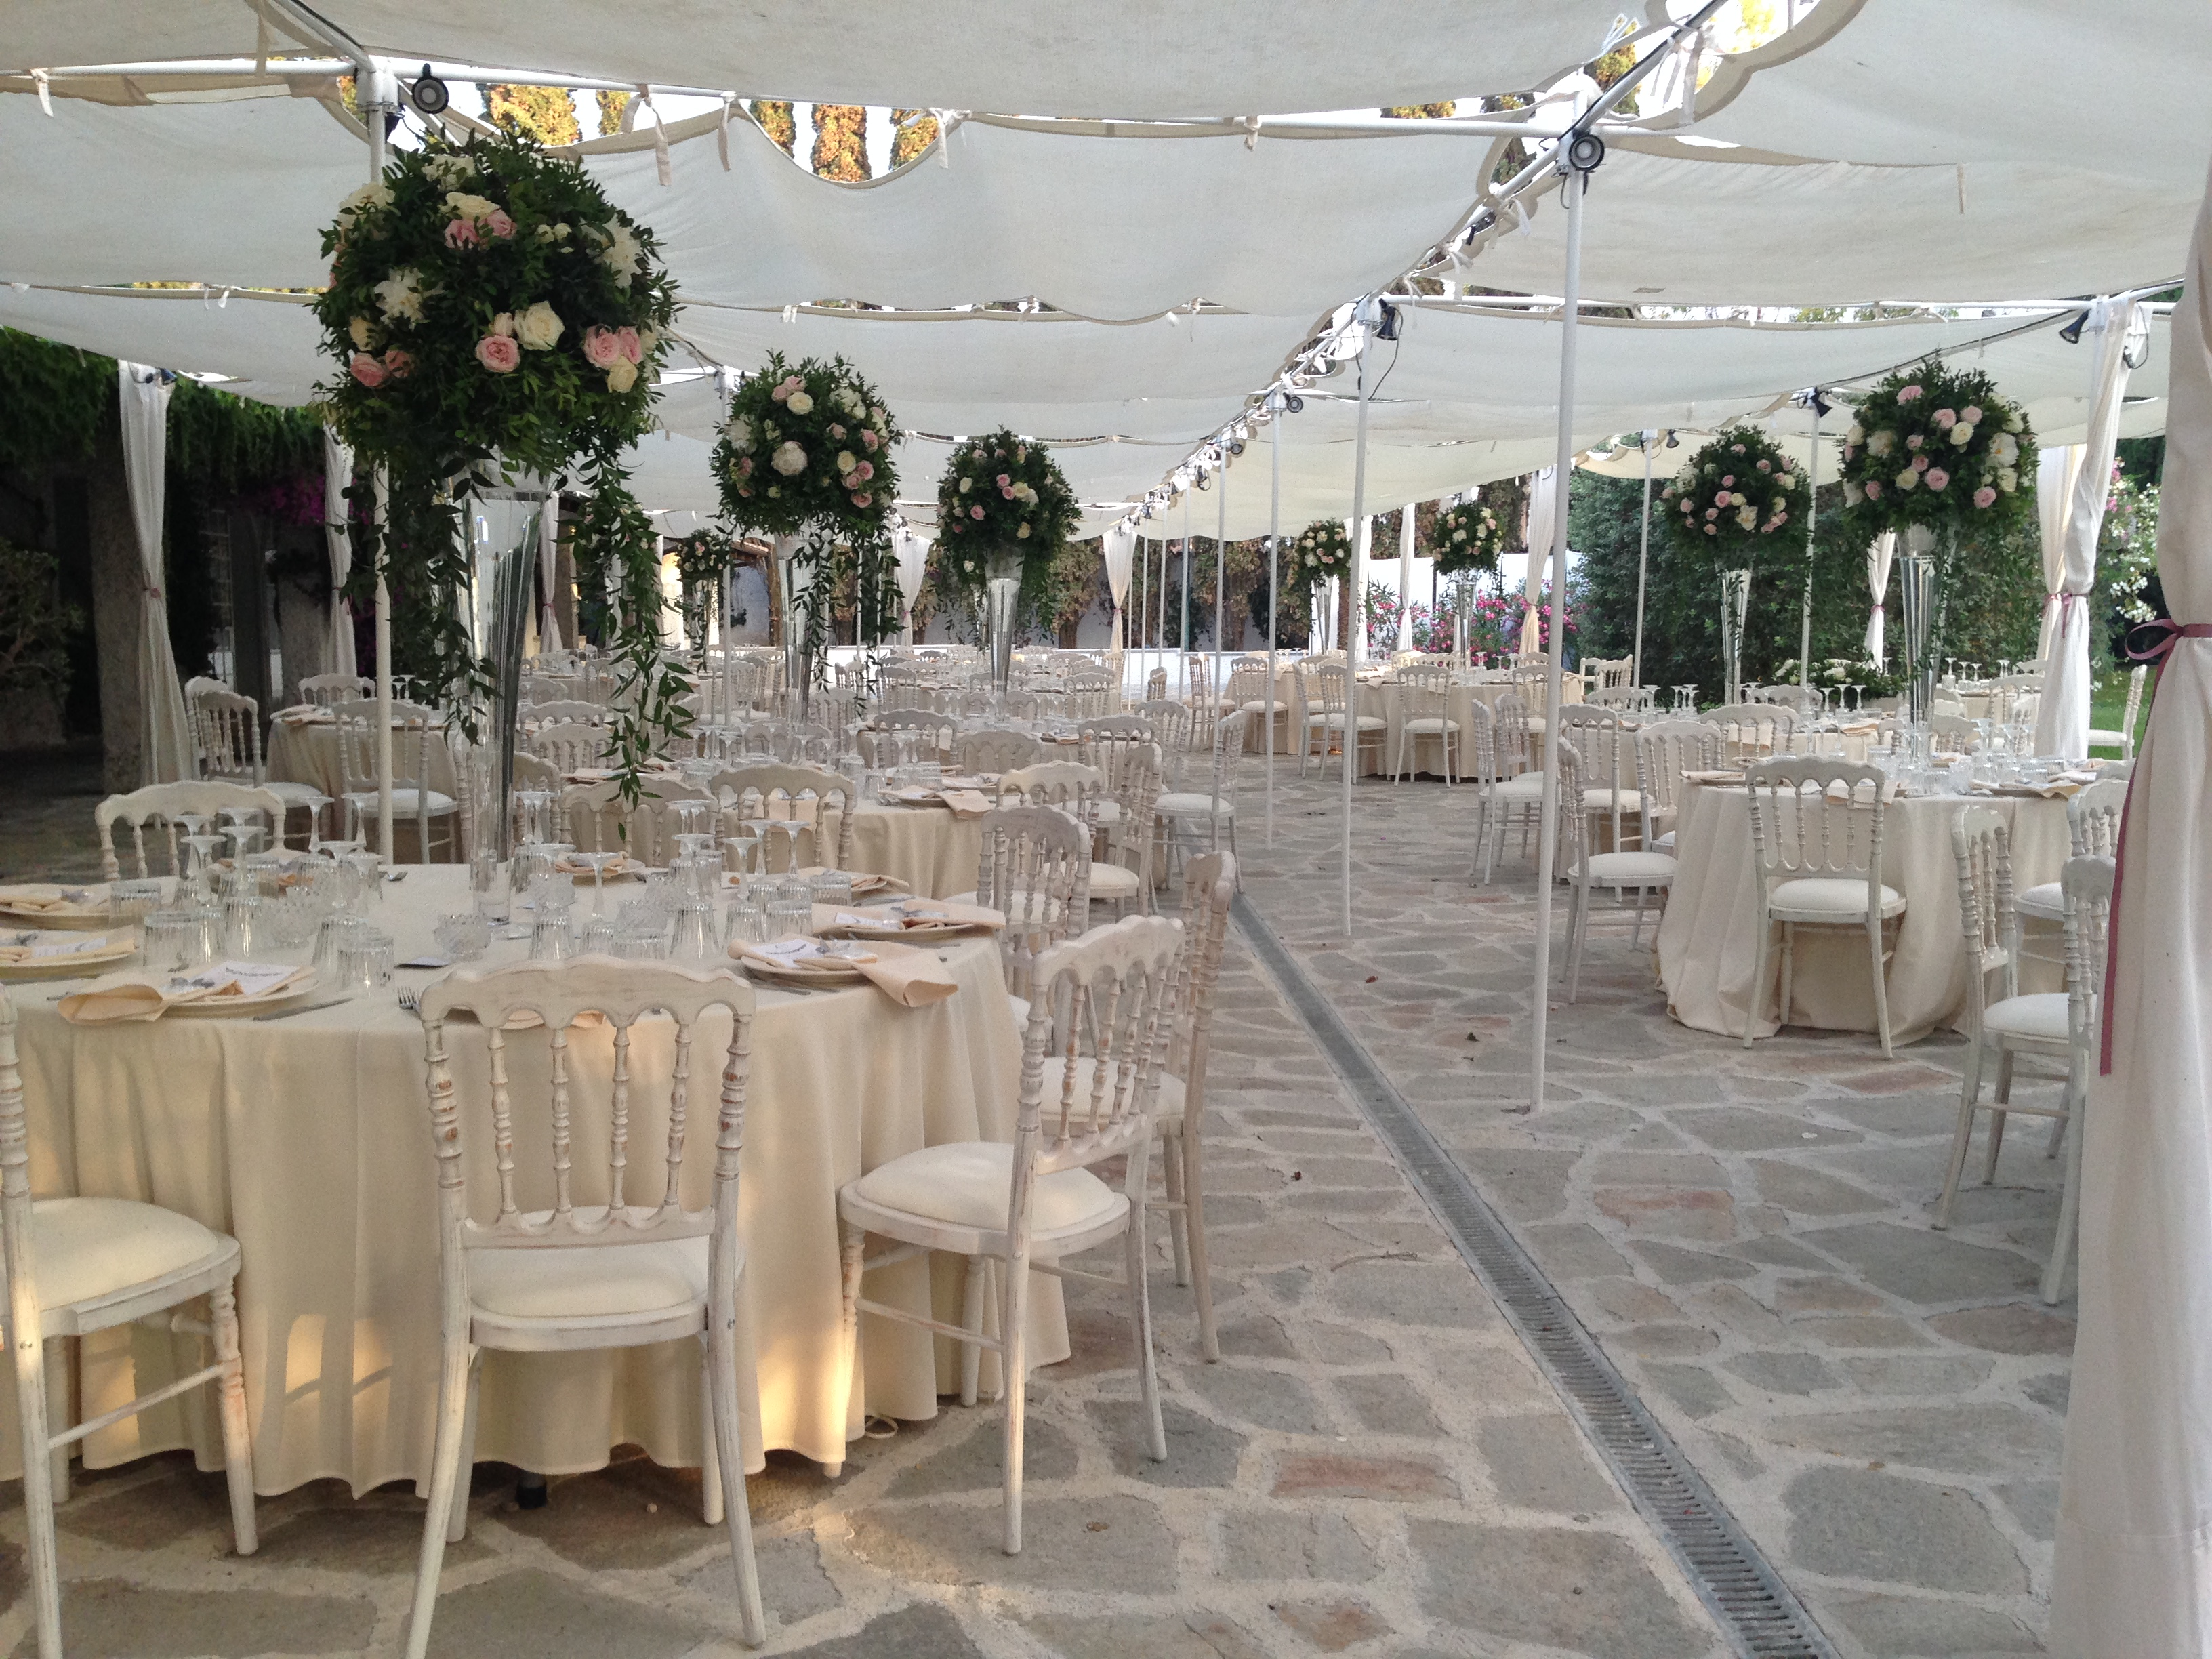 https://www.weddingamalfi.com/wp-content/uploads/Alessandro-and-Diego-wedding-tables-flowers-decoration.jpg